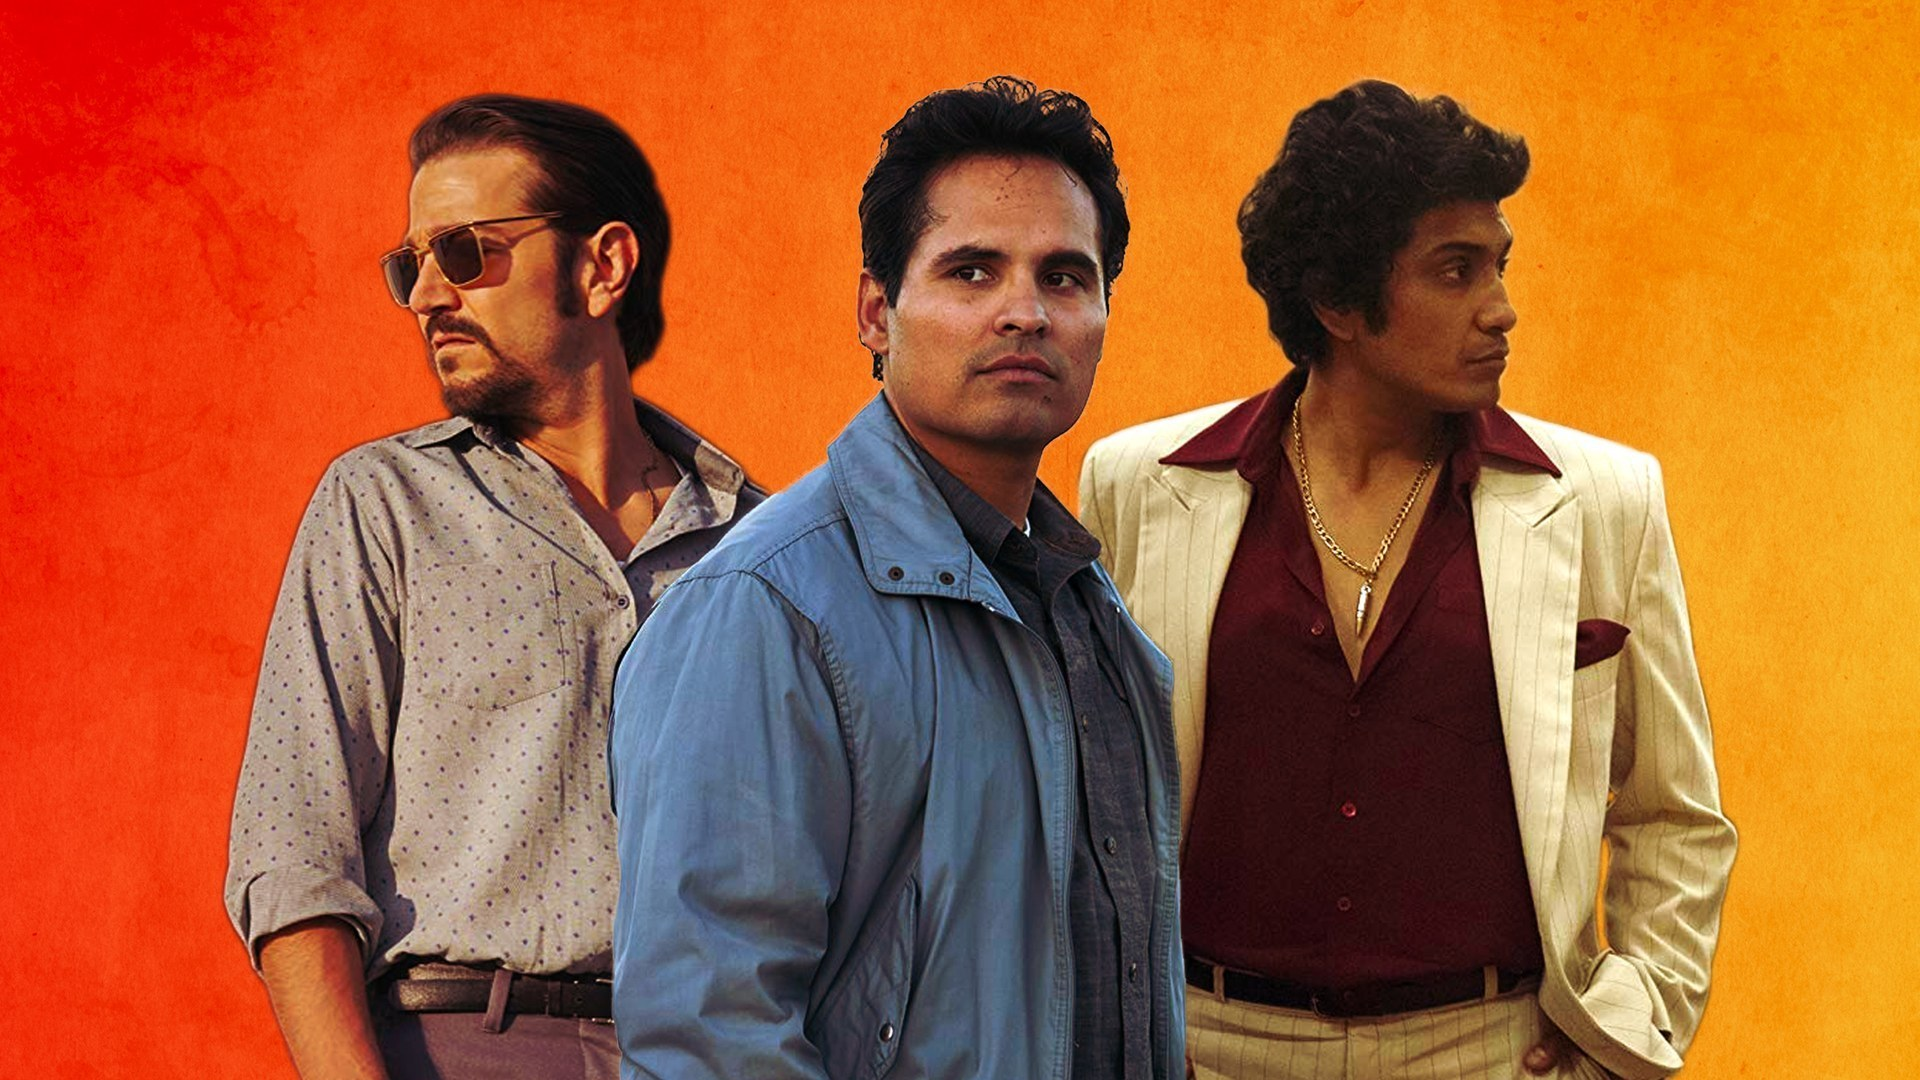 Narcos Mexico Season 2 Trailer, Netflix Release Date, Cast, Plot Spoilers, Total Episodes and Latest Updates